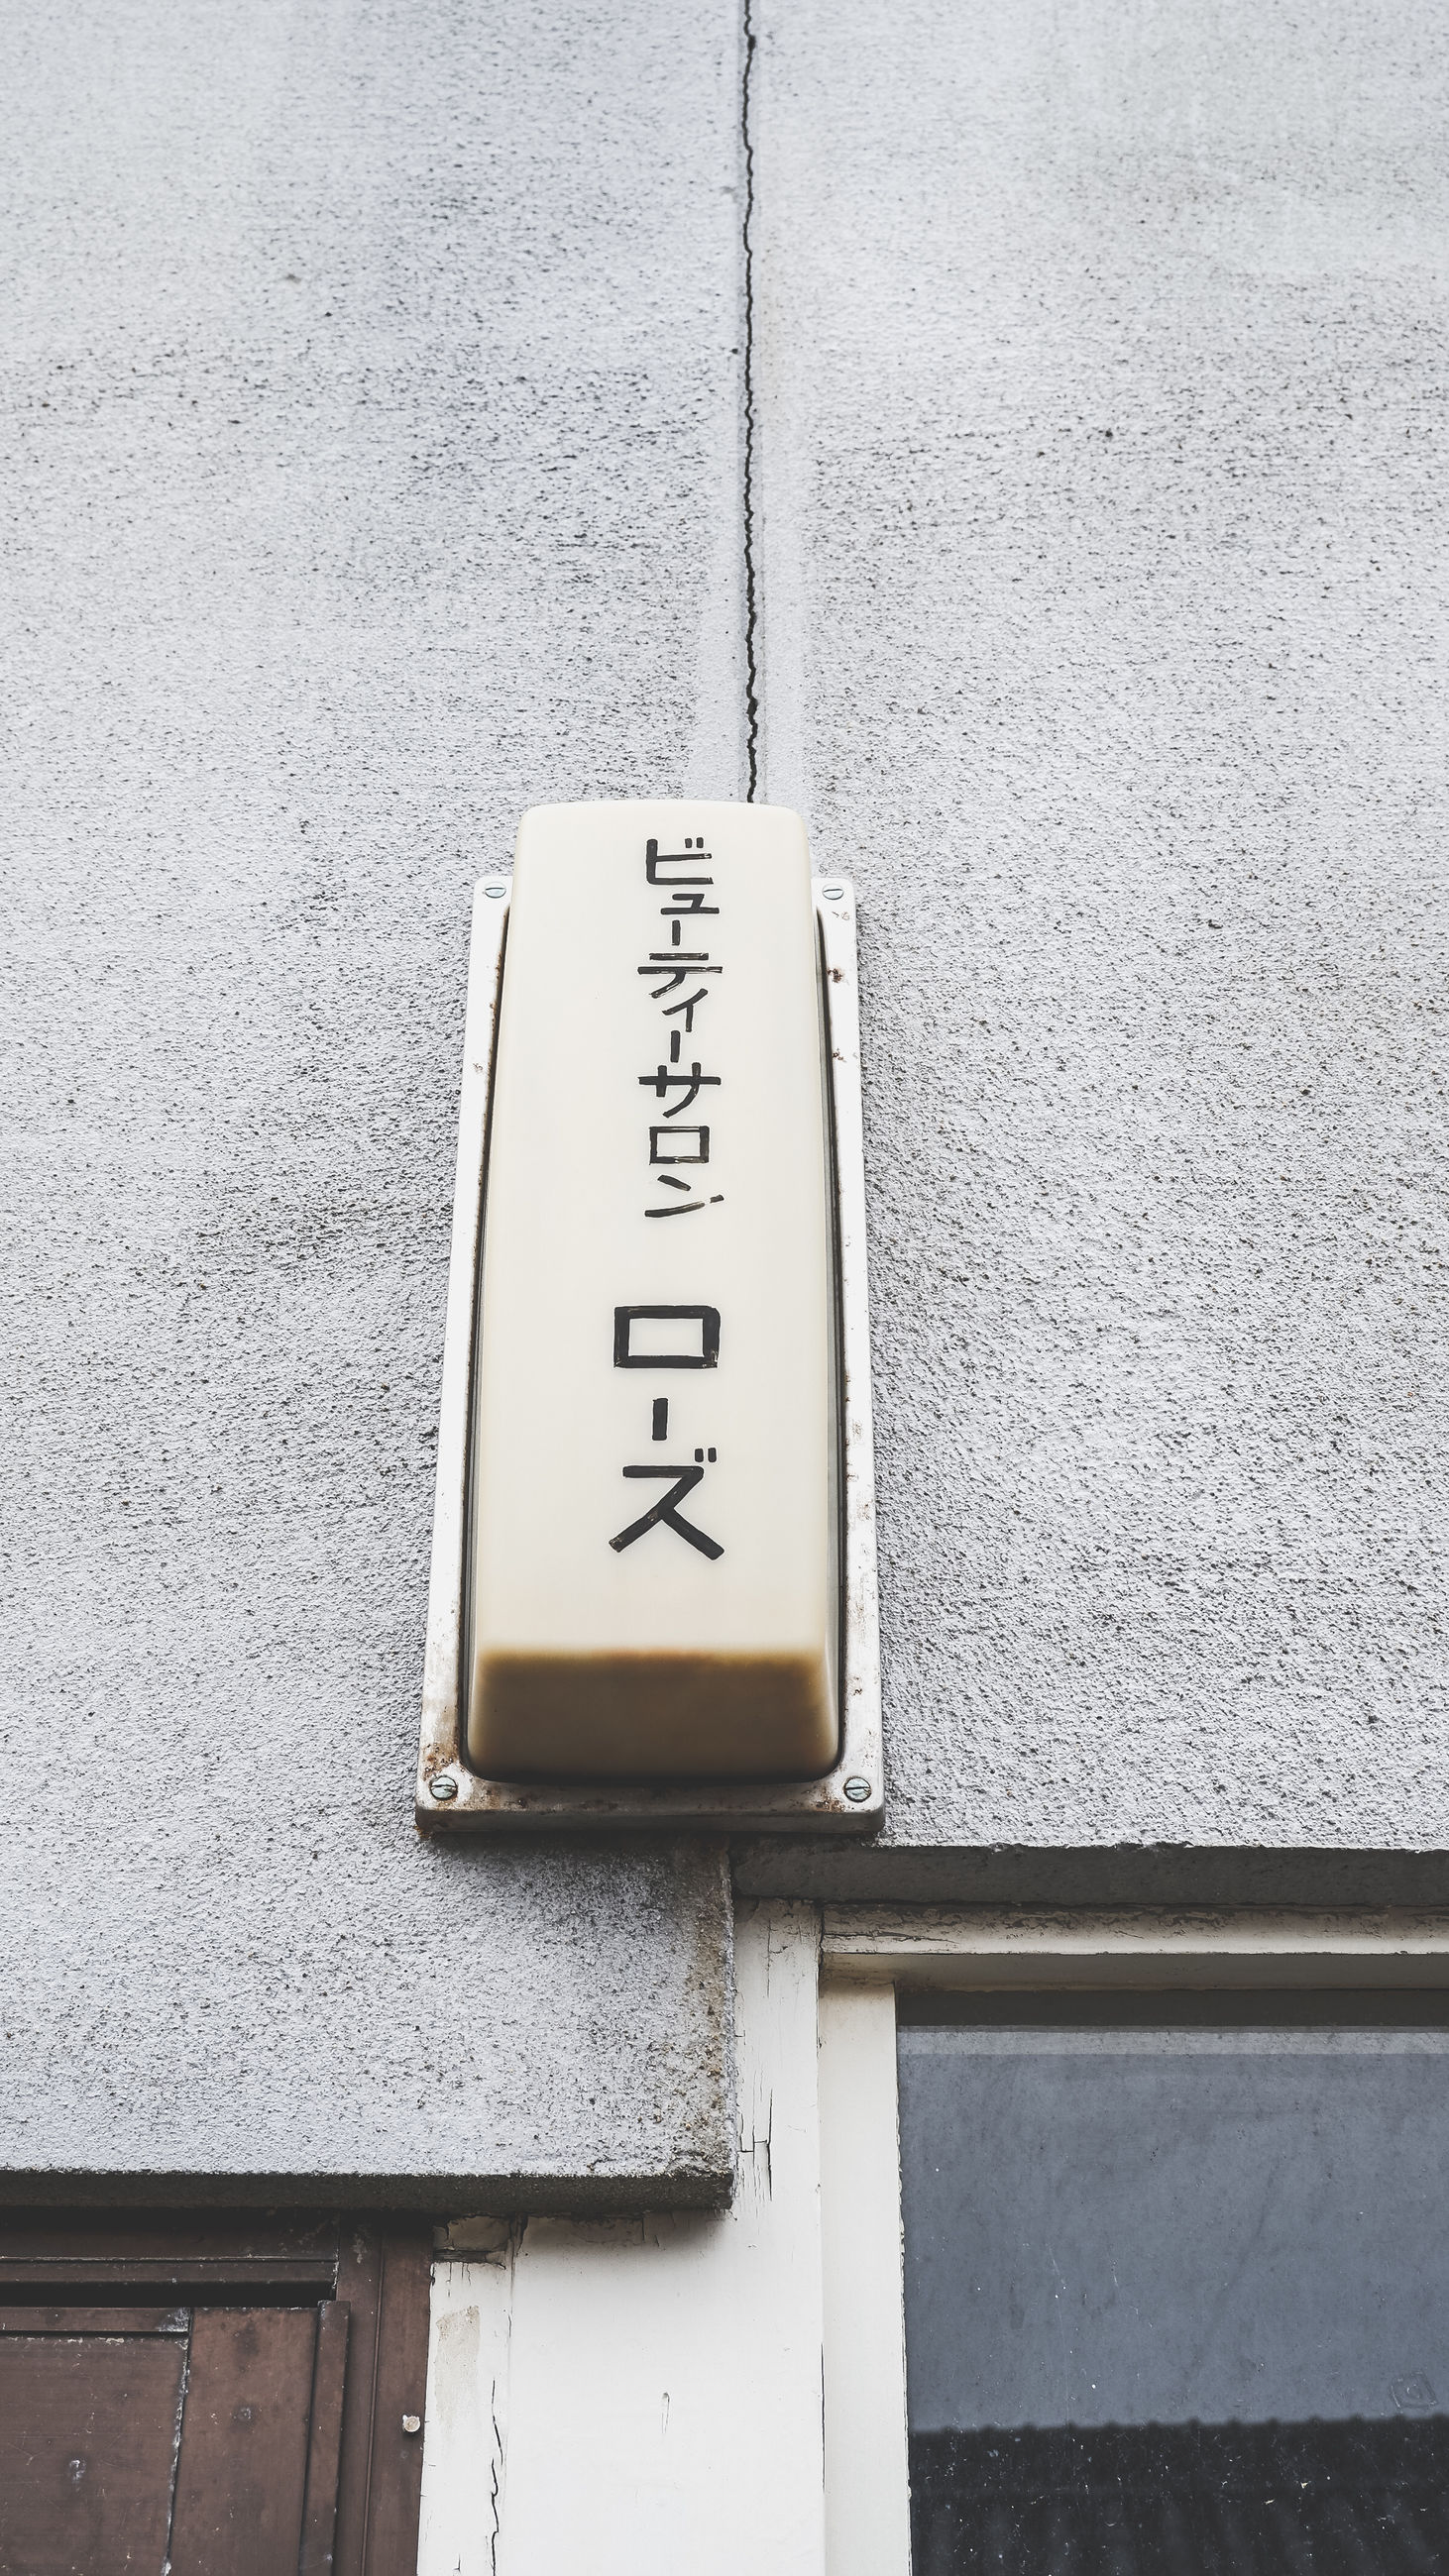 CLOSE-UP OF SIGN ON WALL